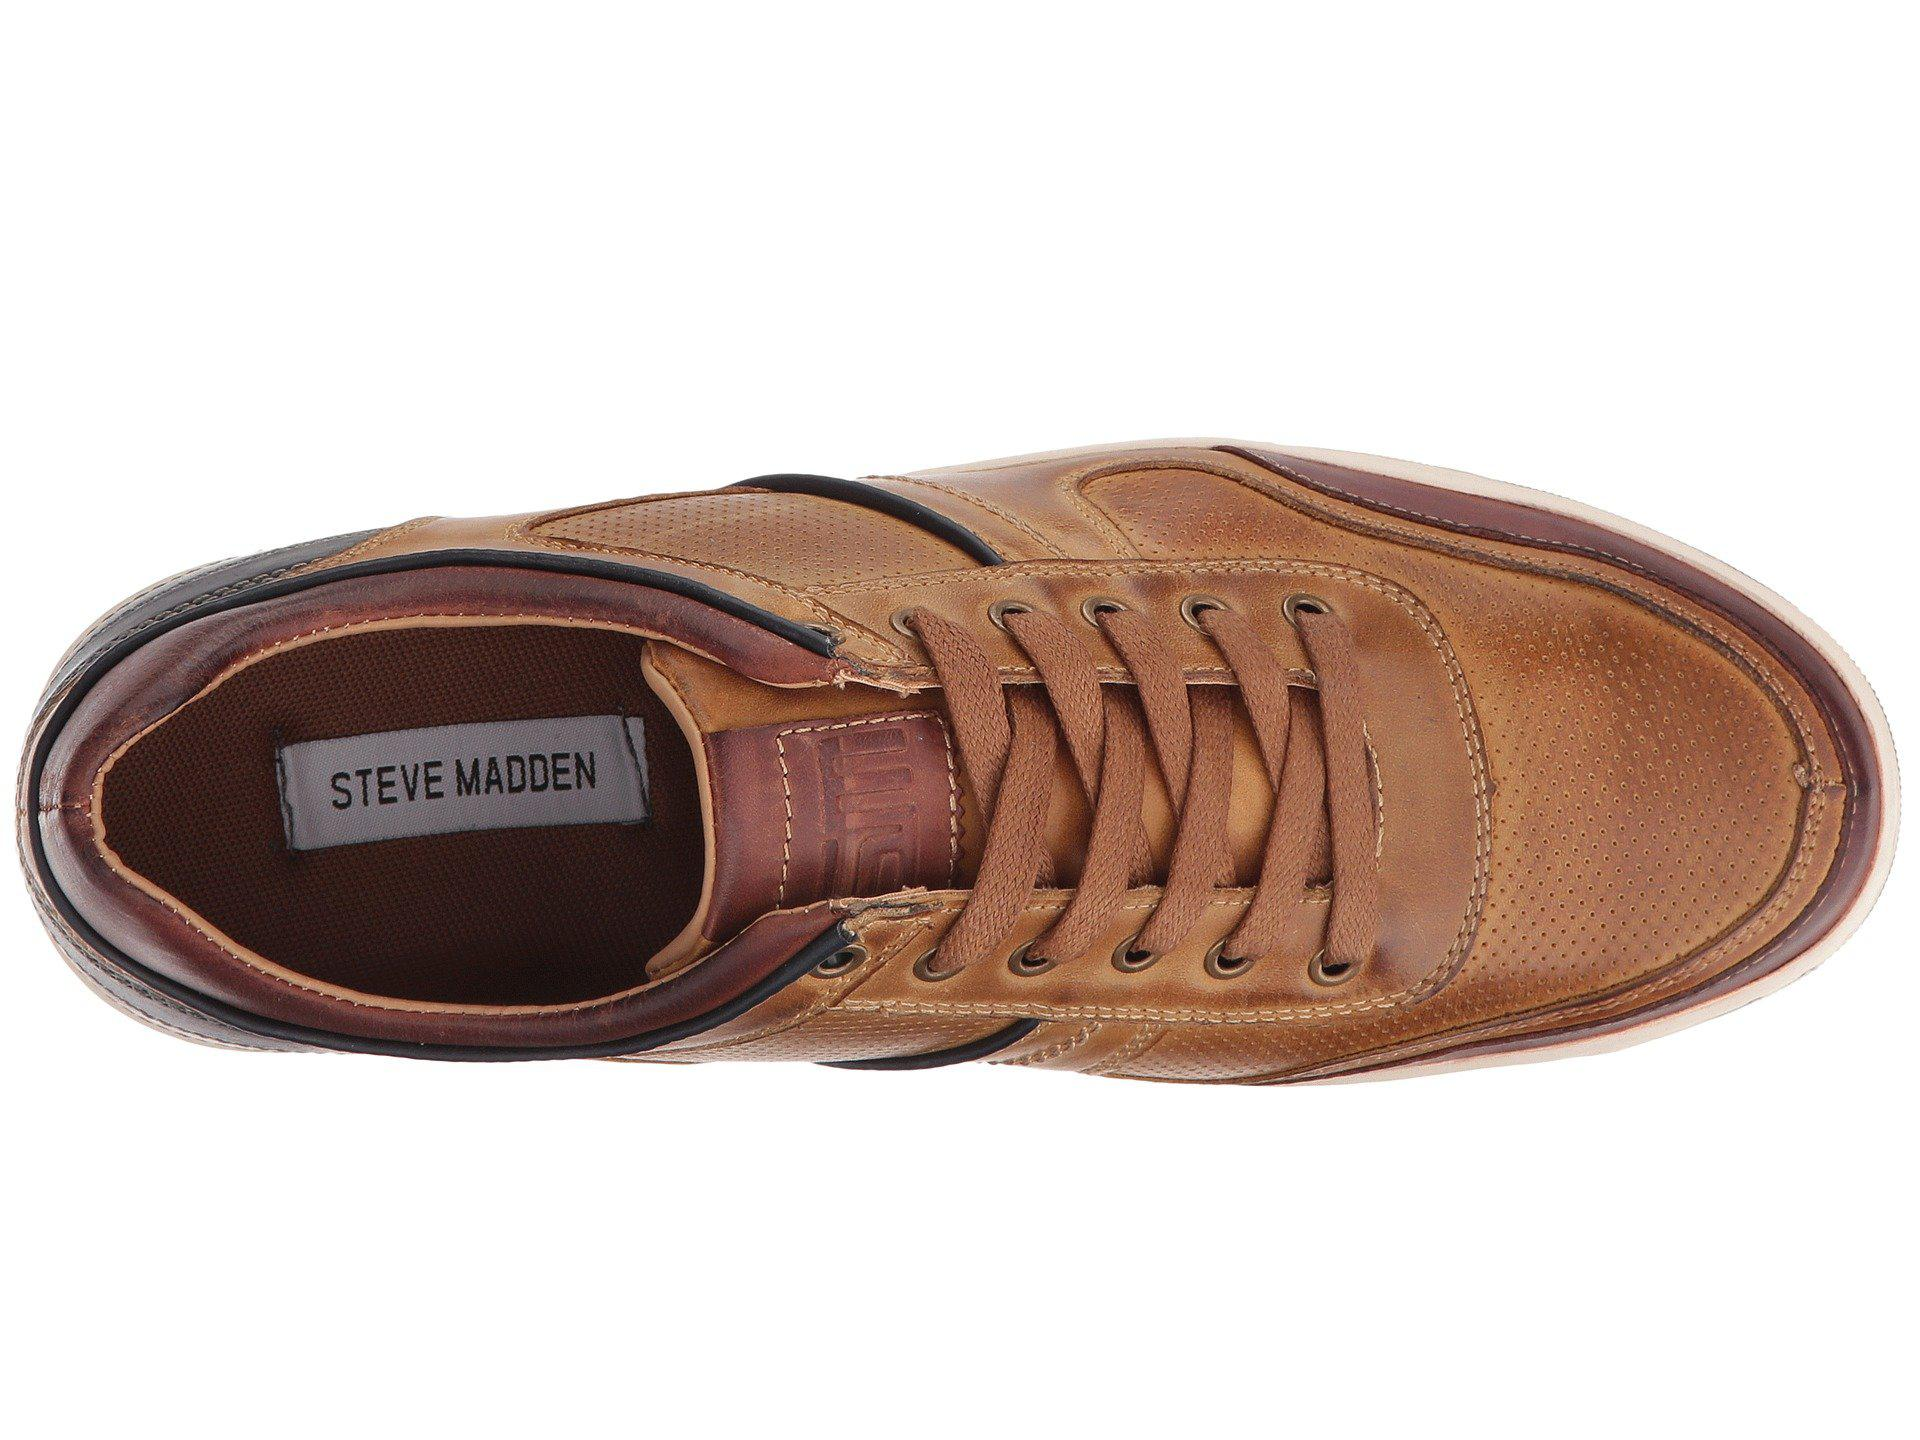 66c89fa52ad Steve Madden - Multicolor Cantor (tan) Men s Lace Up Casual Shoes for Men  -. View fullscreen